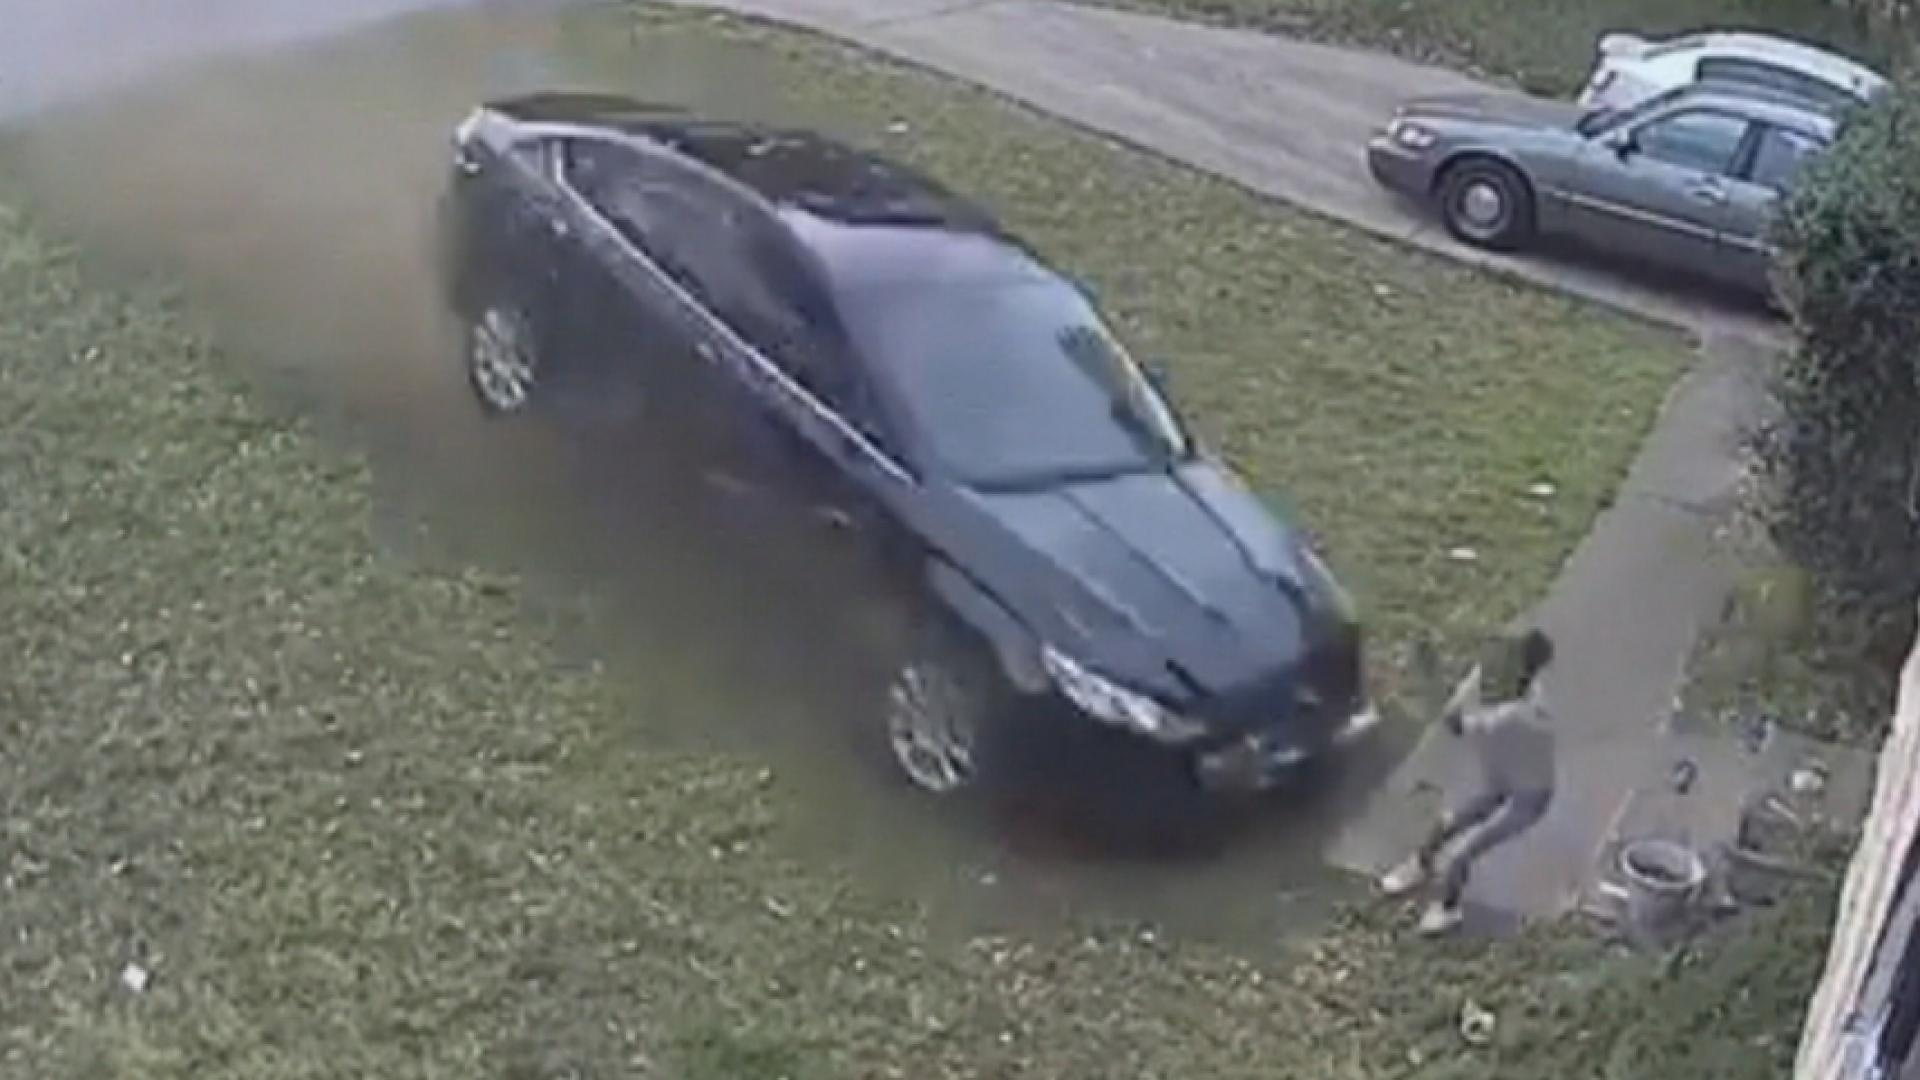 Graphic video shows hit-and-run driver plowing into 9-year-old girl